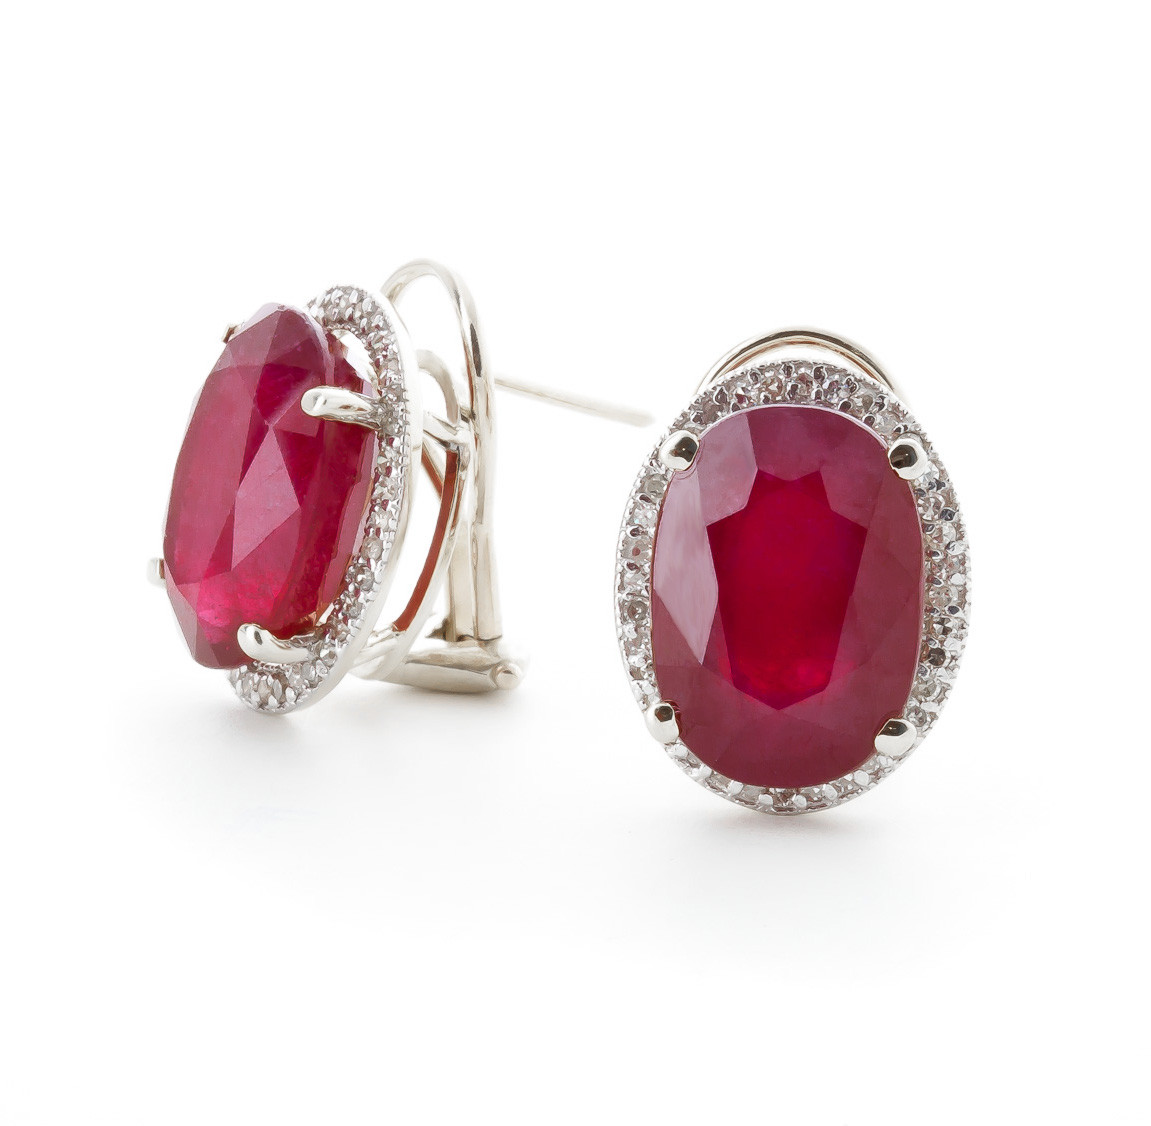 Ruby French Clip Halo Earrings 15.86 ctw in 9ct White Gold